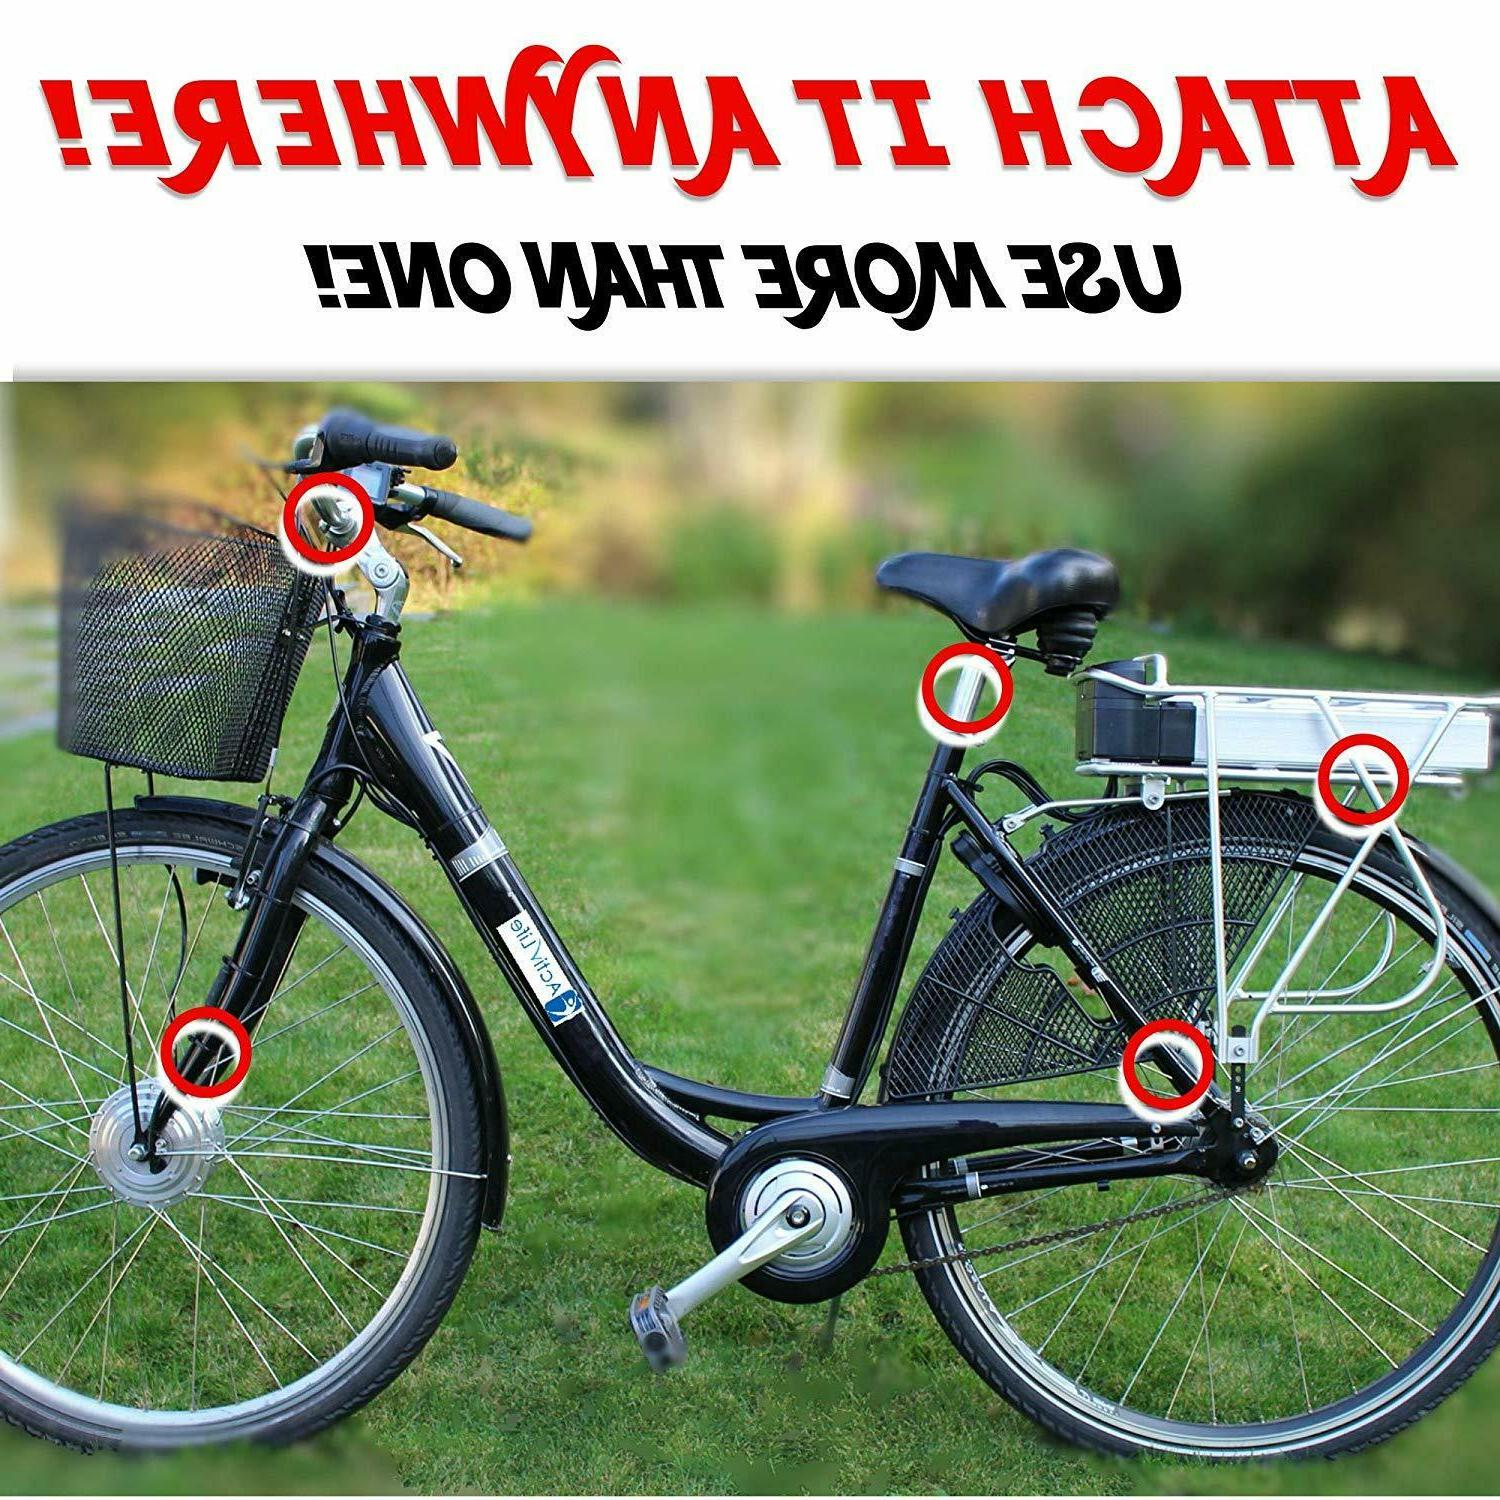 Activ Life bike bicycle, Style, Fun way to be seen!